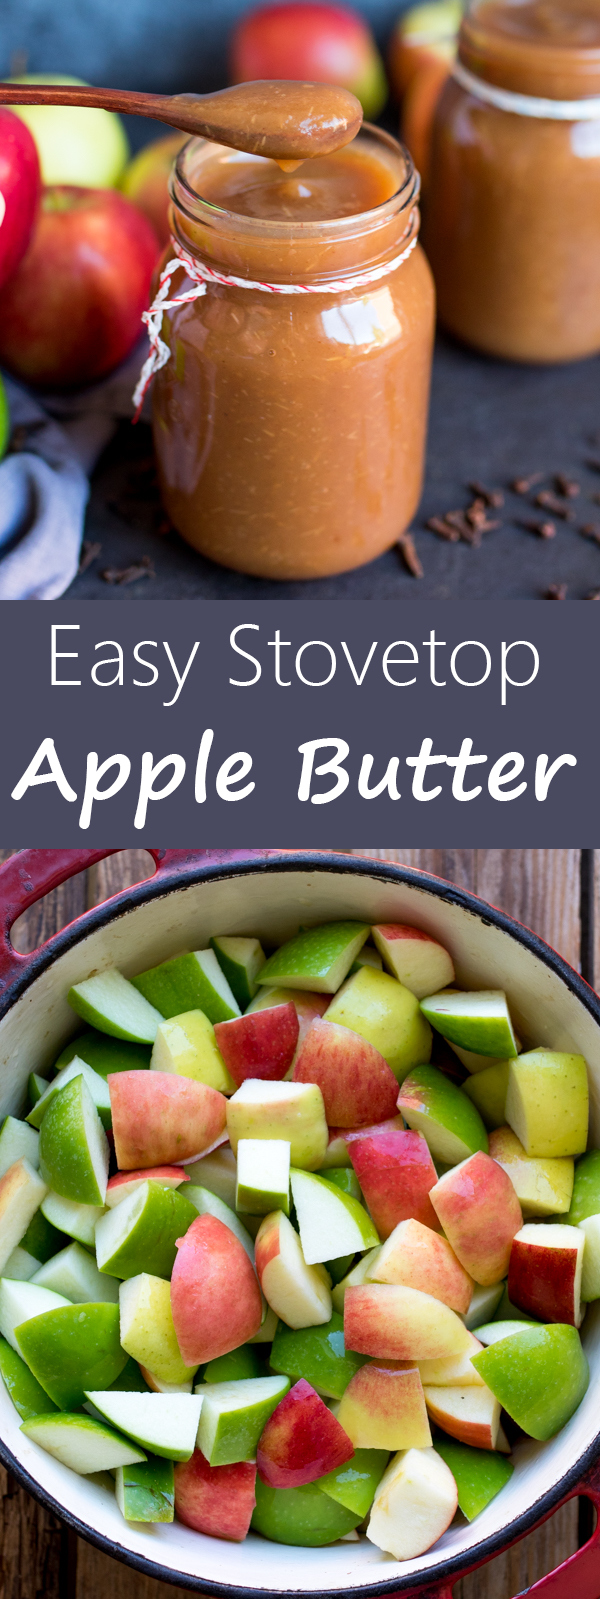 easy stovetop apple butter pin